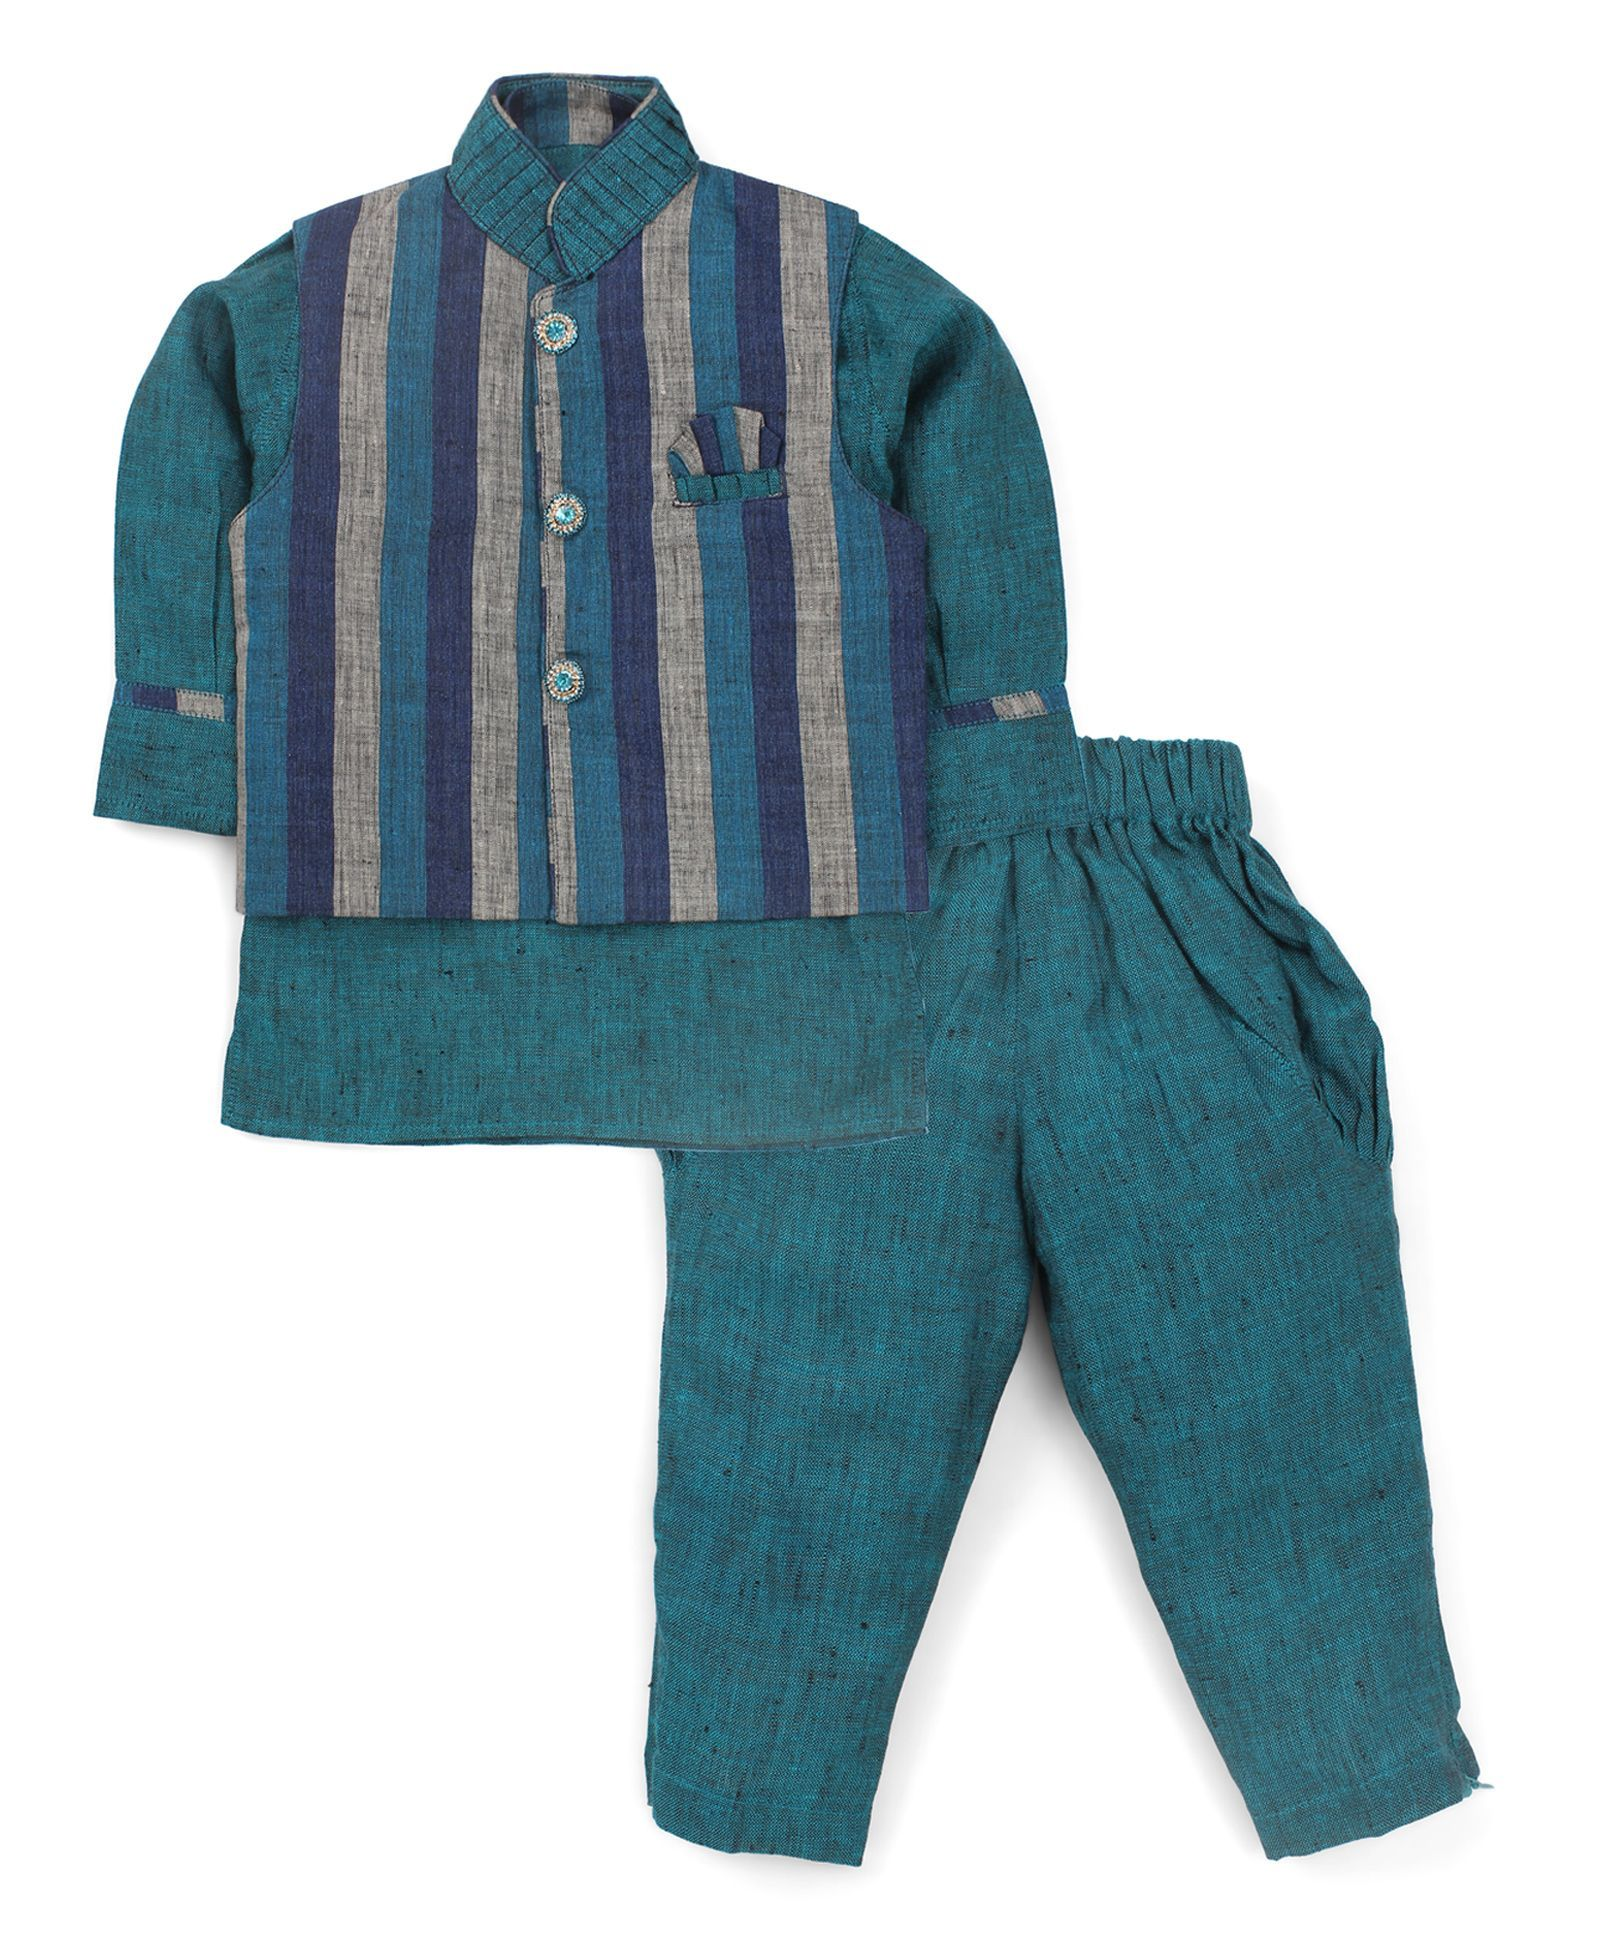 Buy Active Kids Wear Jodhpuri Kurta And Pajama With Jacket Stripes Blue For Boys 0 3 Months Online In India At Best Price Kids Wear Blue Stripes How To Wear